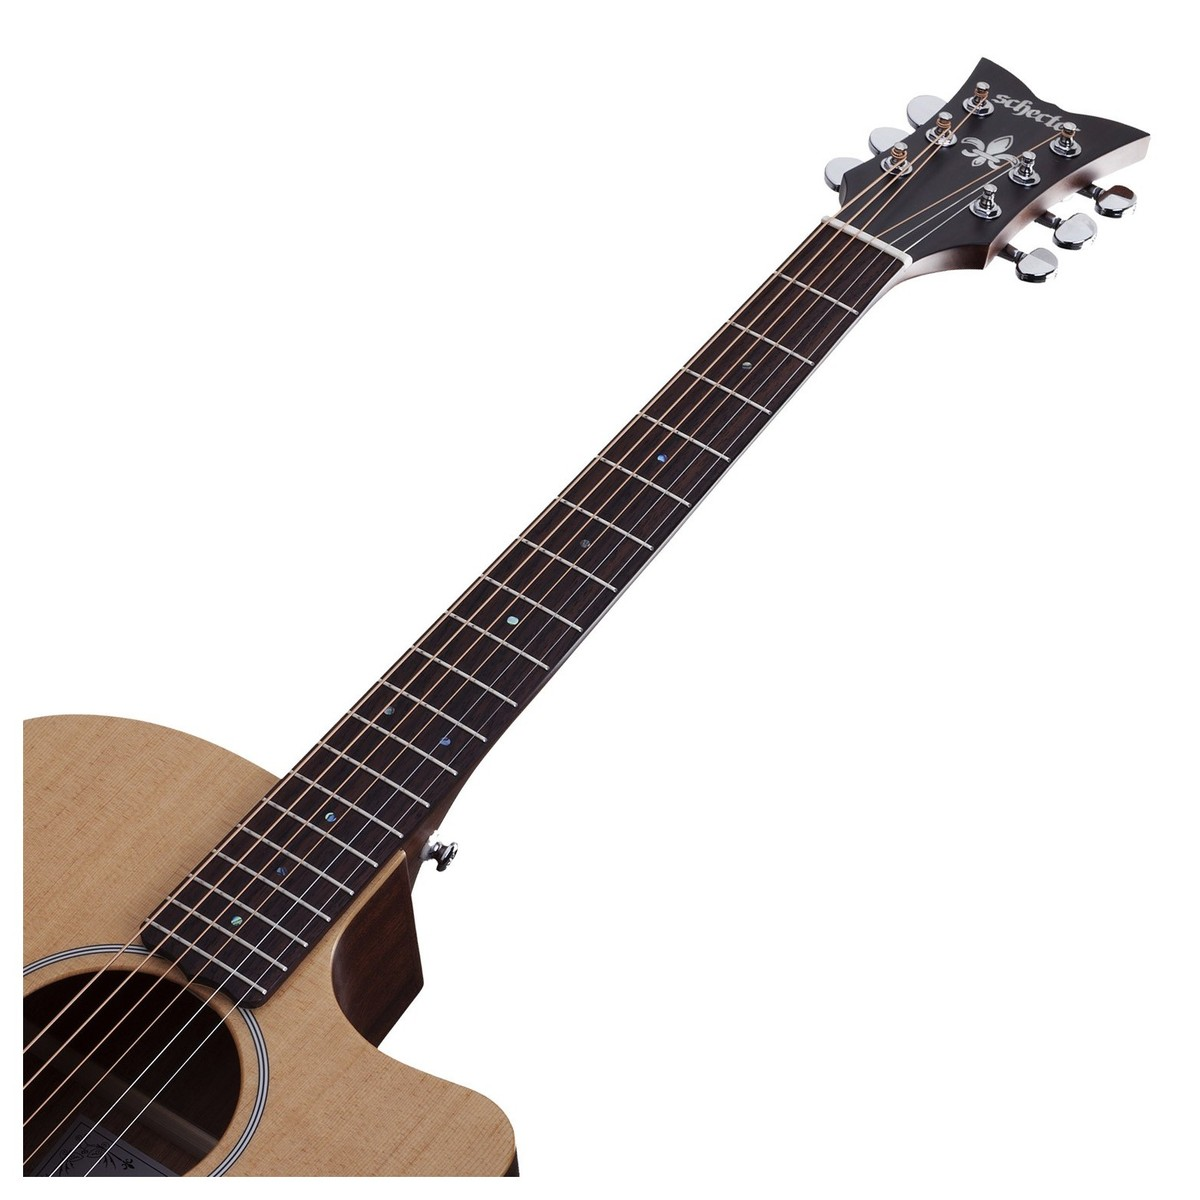 schecter deluxe acoustic guitar natural satin at. Black Bedroom Furniture Sets. Home Design Ideas